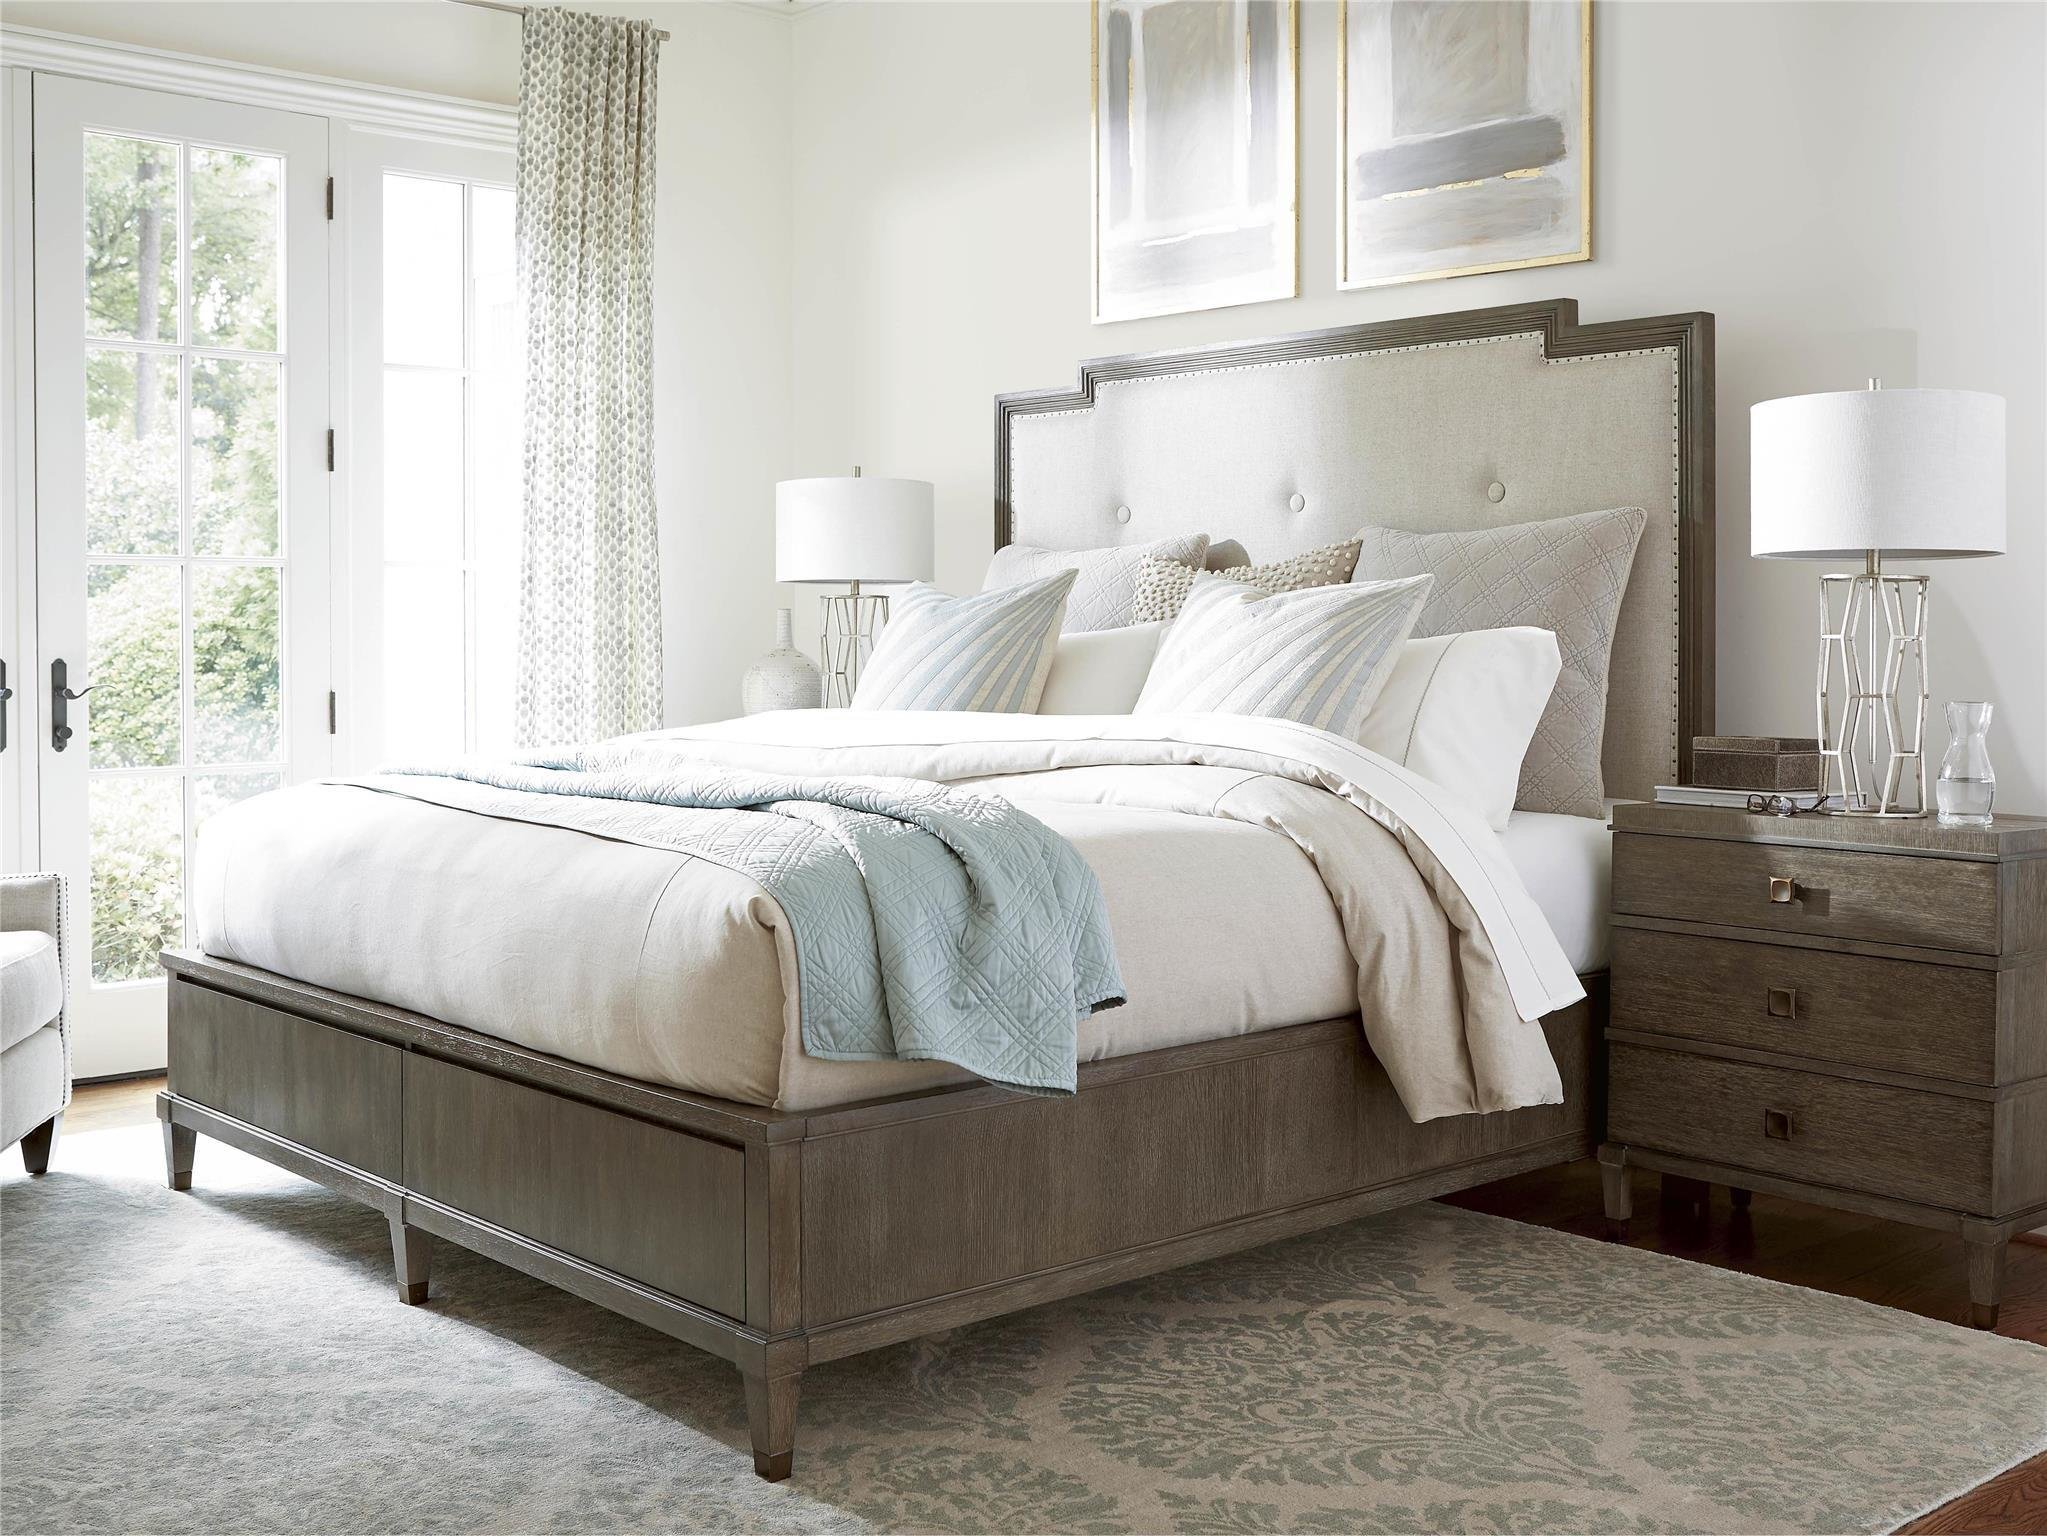 Best Universal Furniture Playlist Harmony Queen Bed With Storage With Pictures